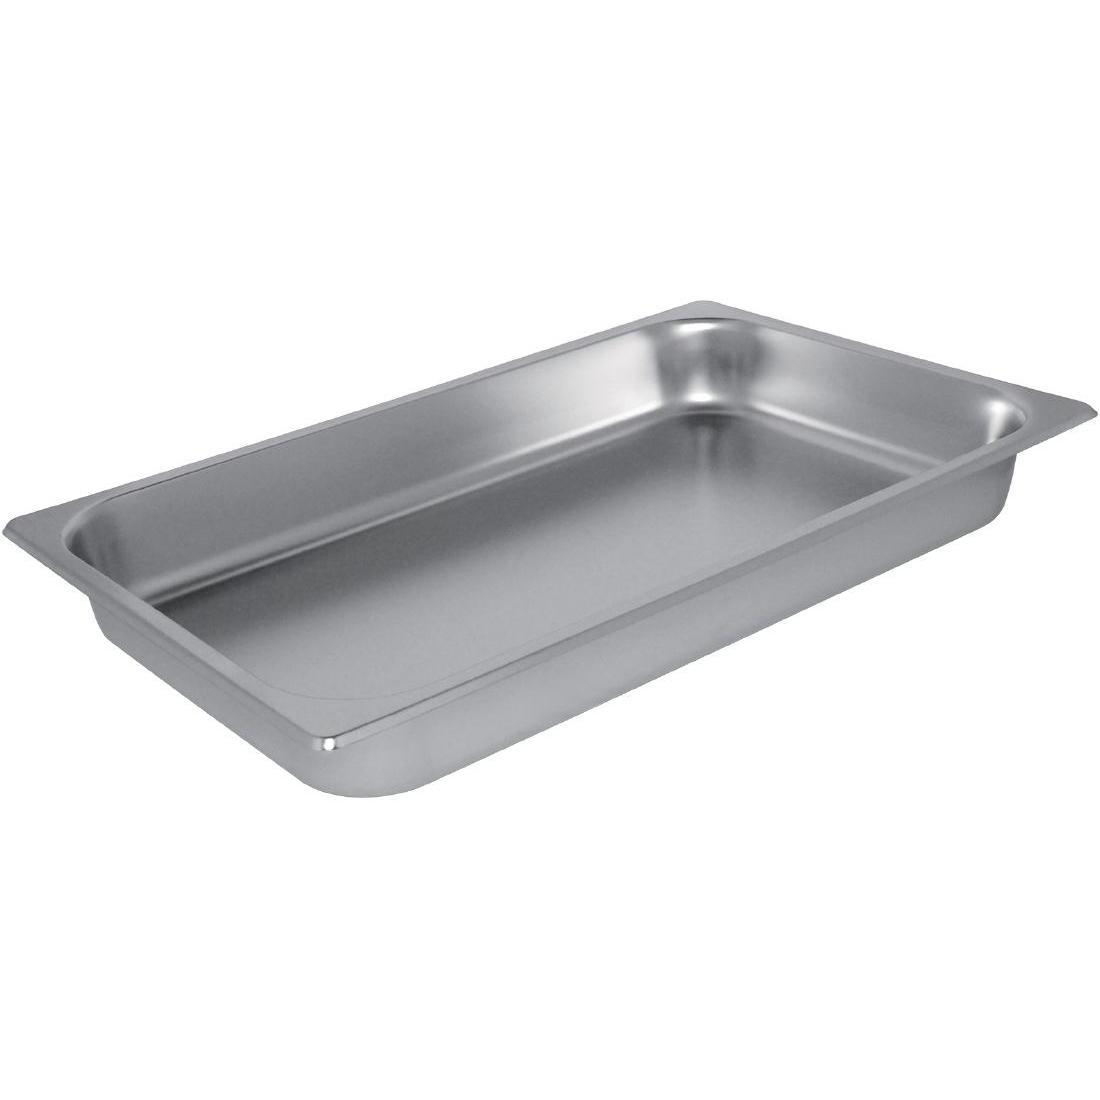 Spare Food Pan for U008